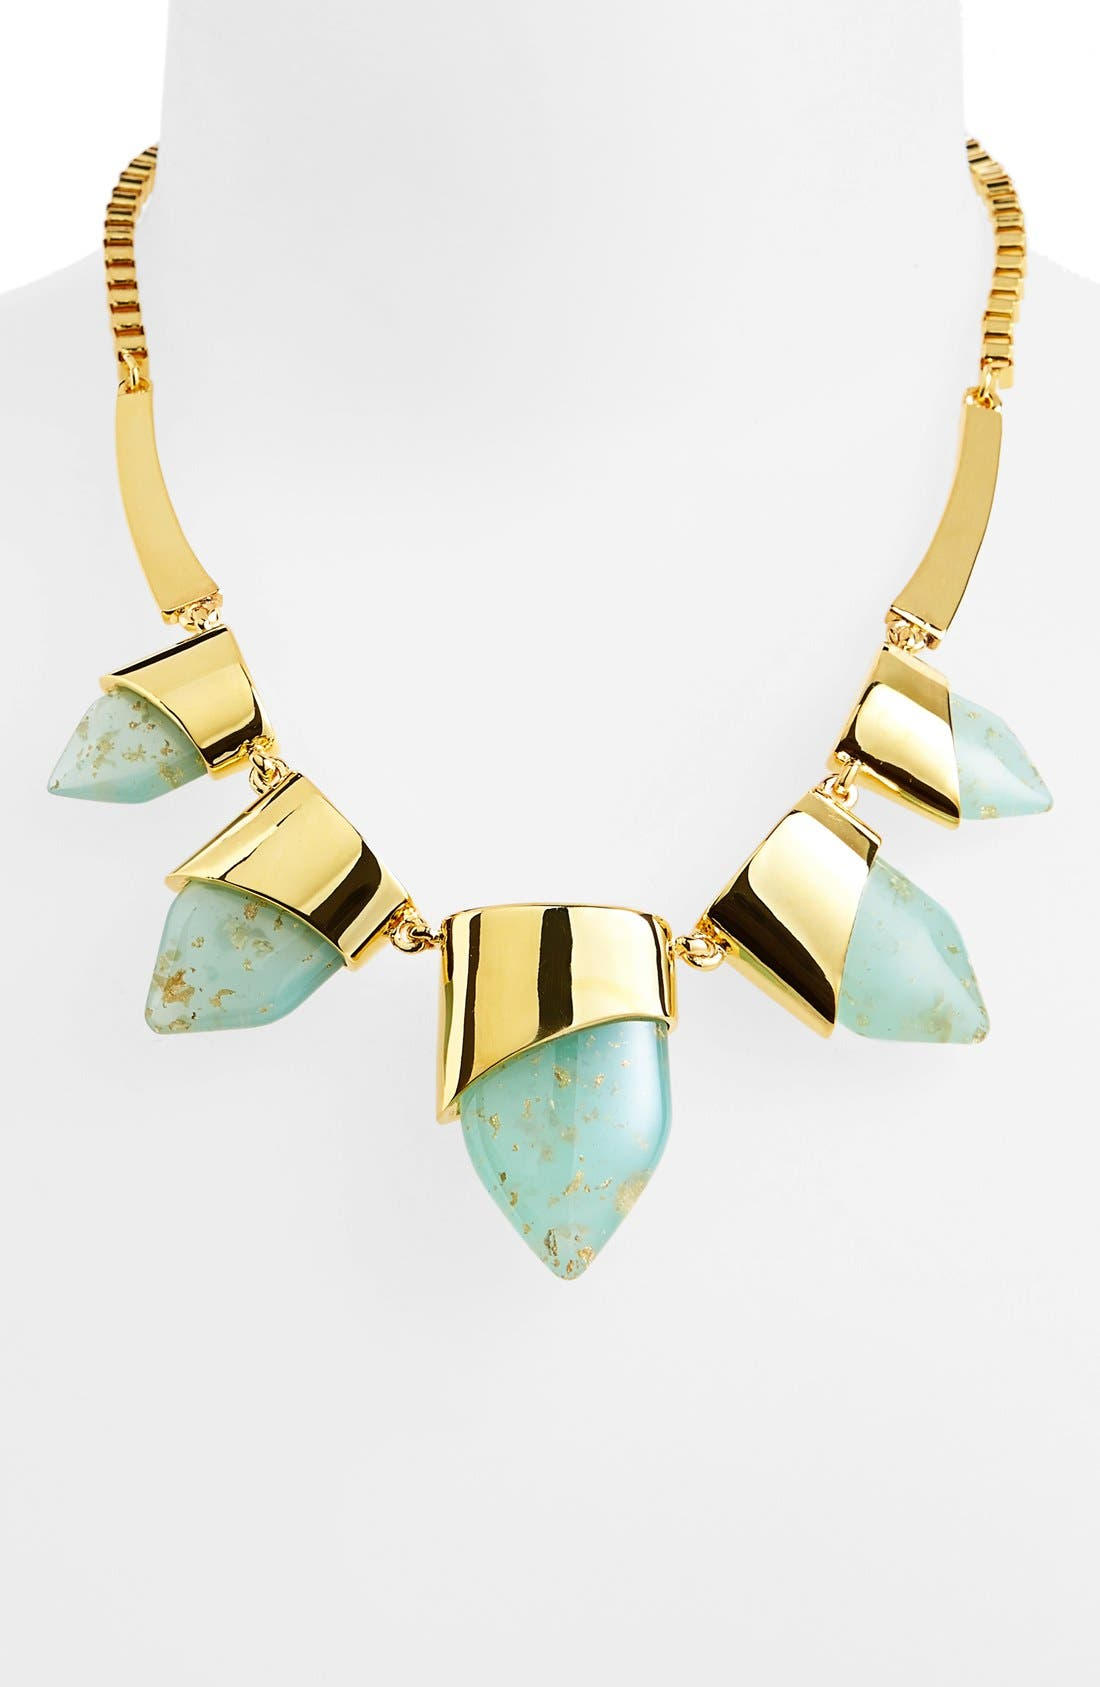 Alternate Image 1 Selected - Vince Camuto 'Smooth Moves' Frontal Necklace